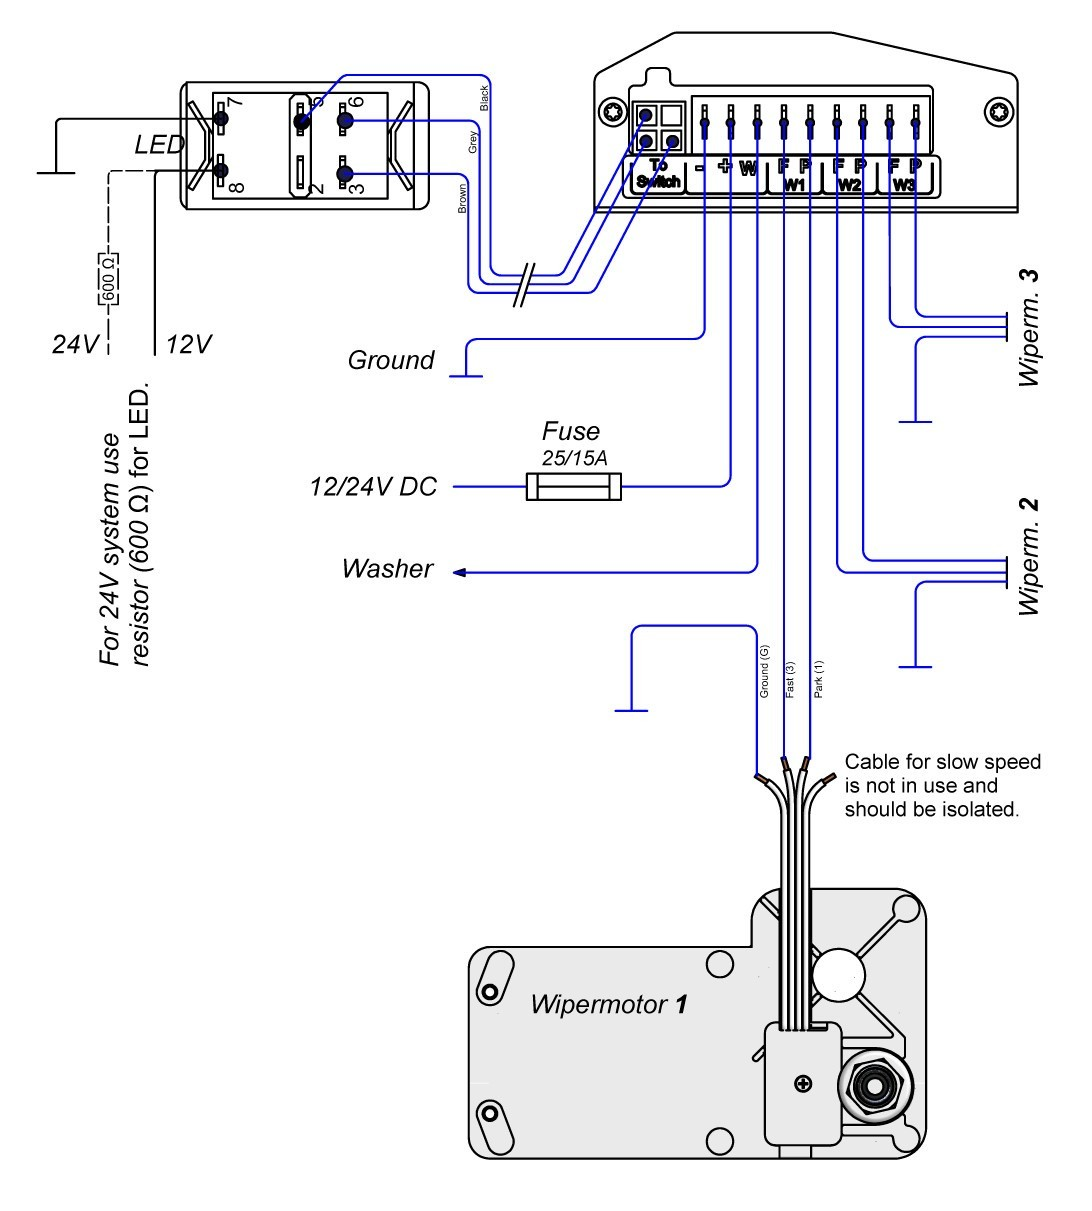 66 Chevelle Wiper Motor Wiring Diagram